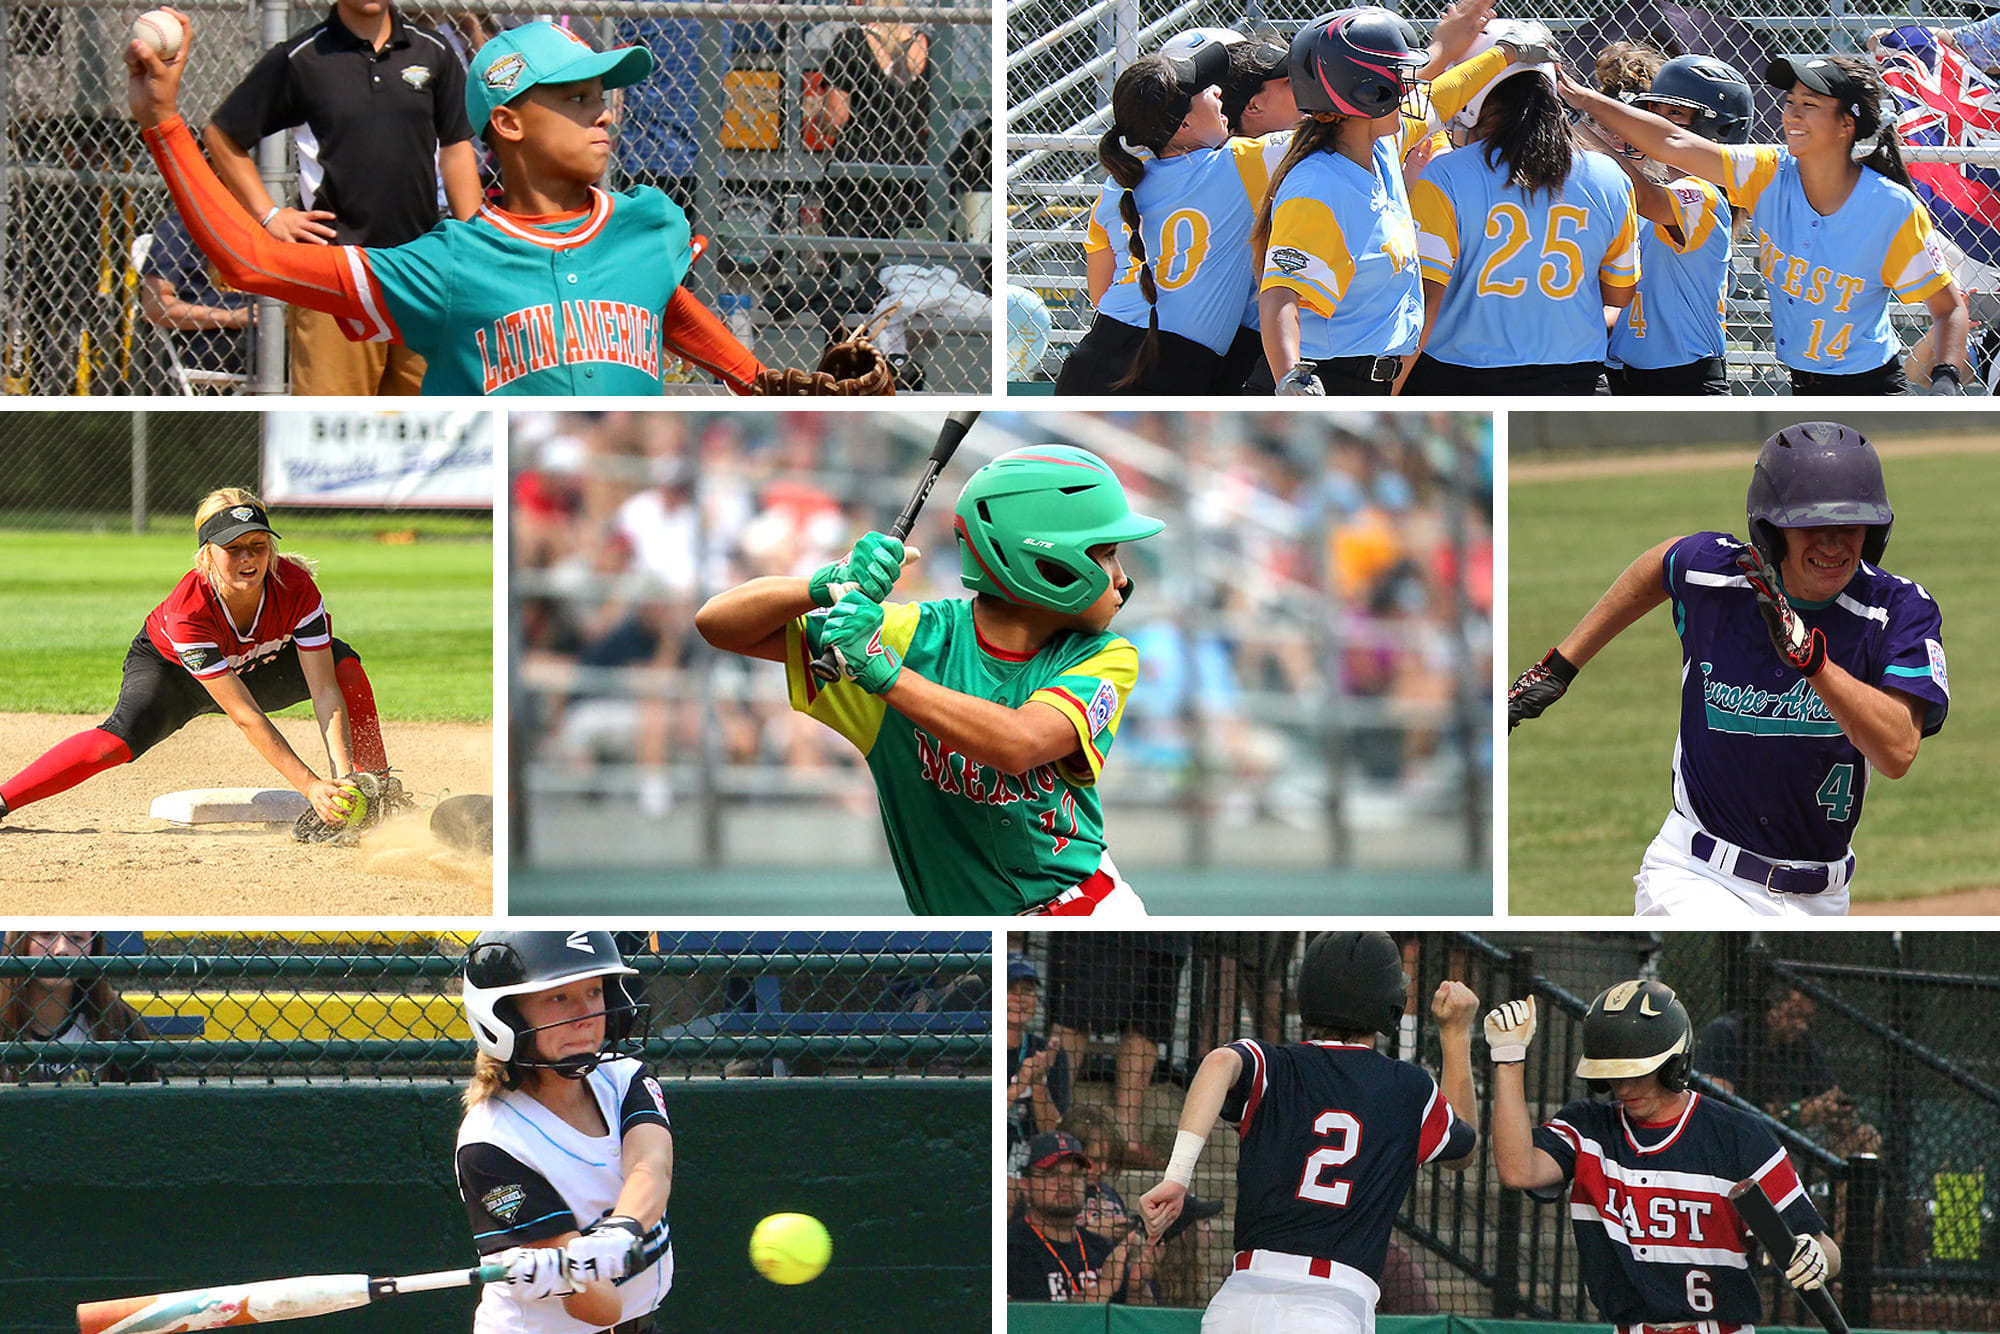 2019 LLWS ESPN Game Coverage